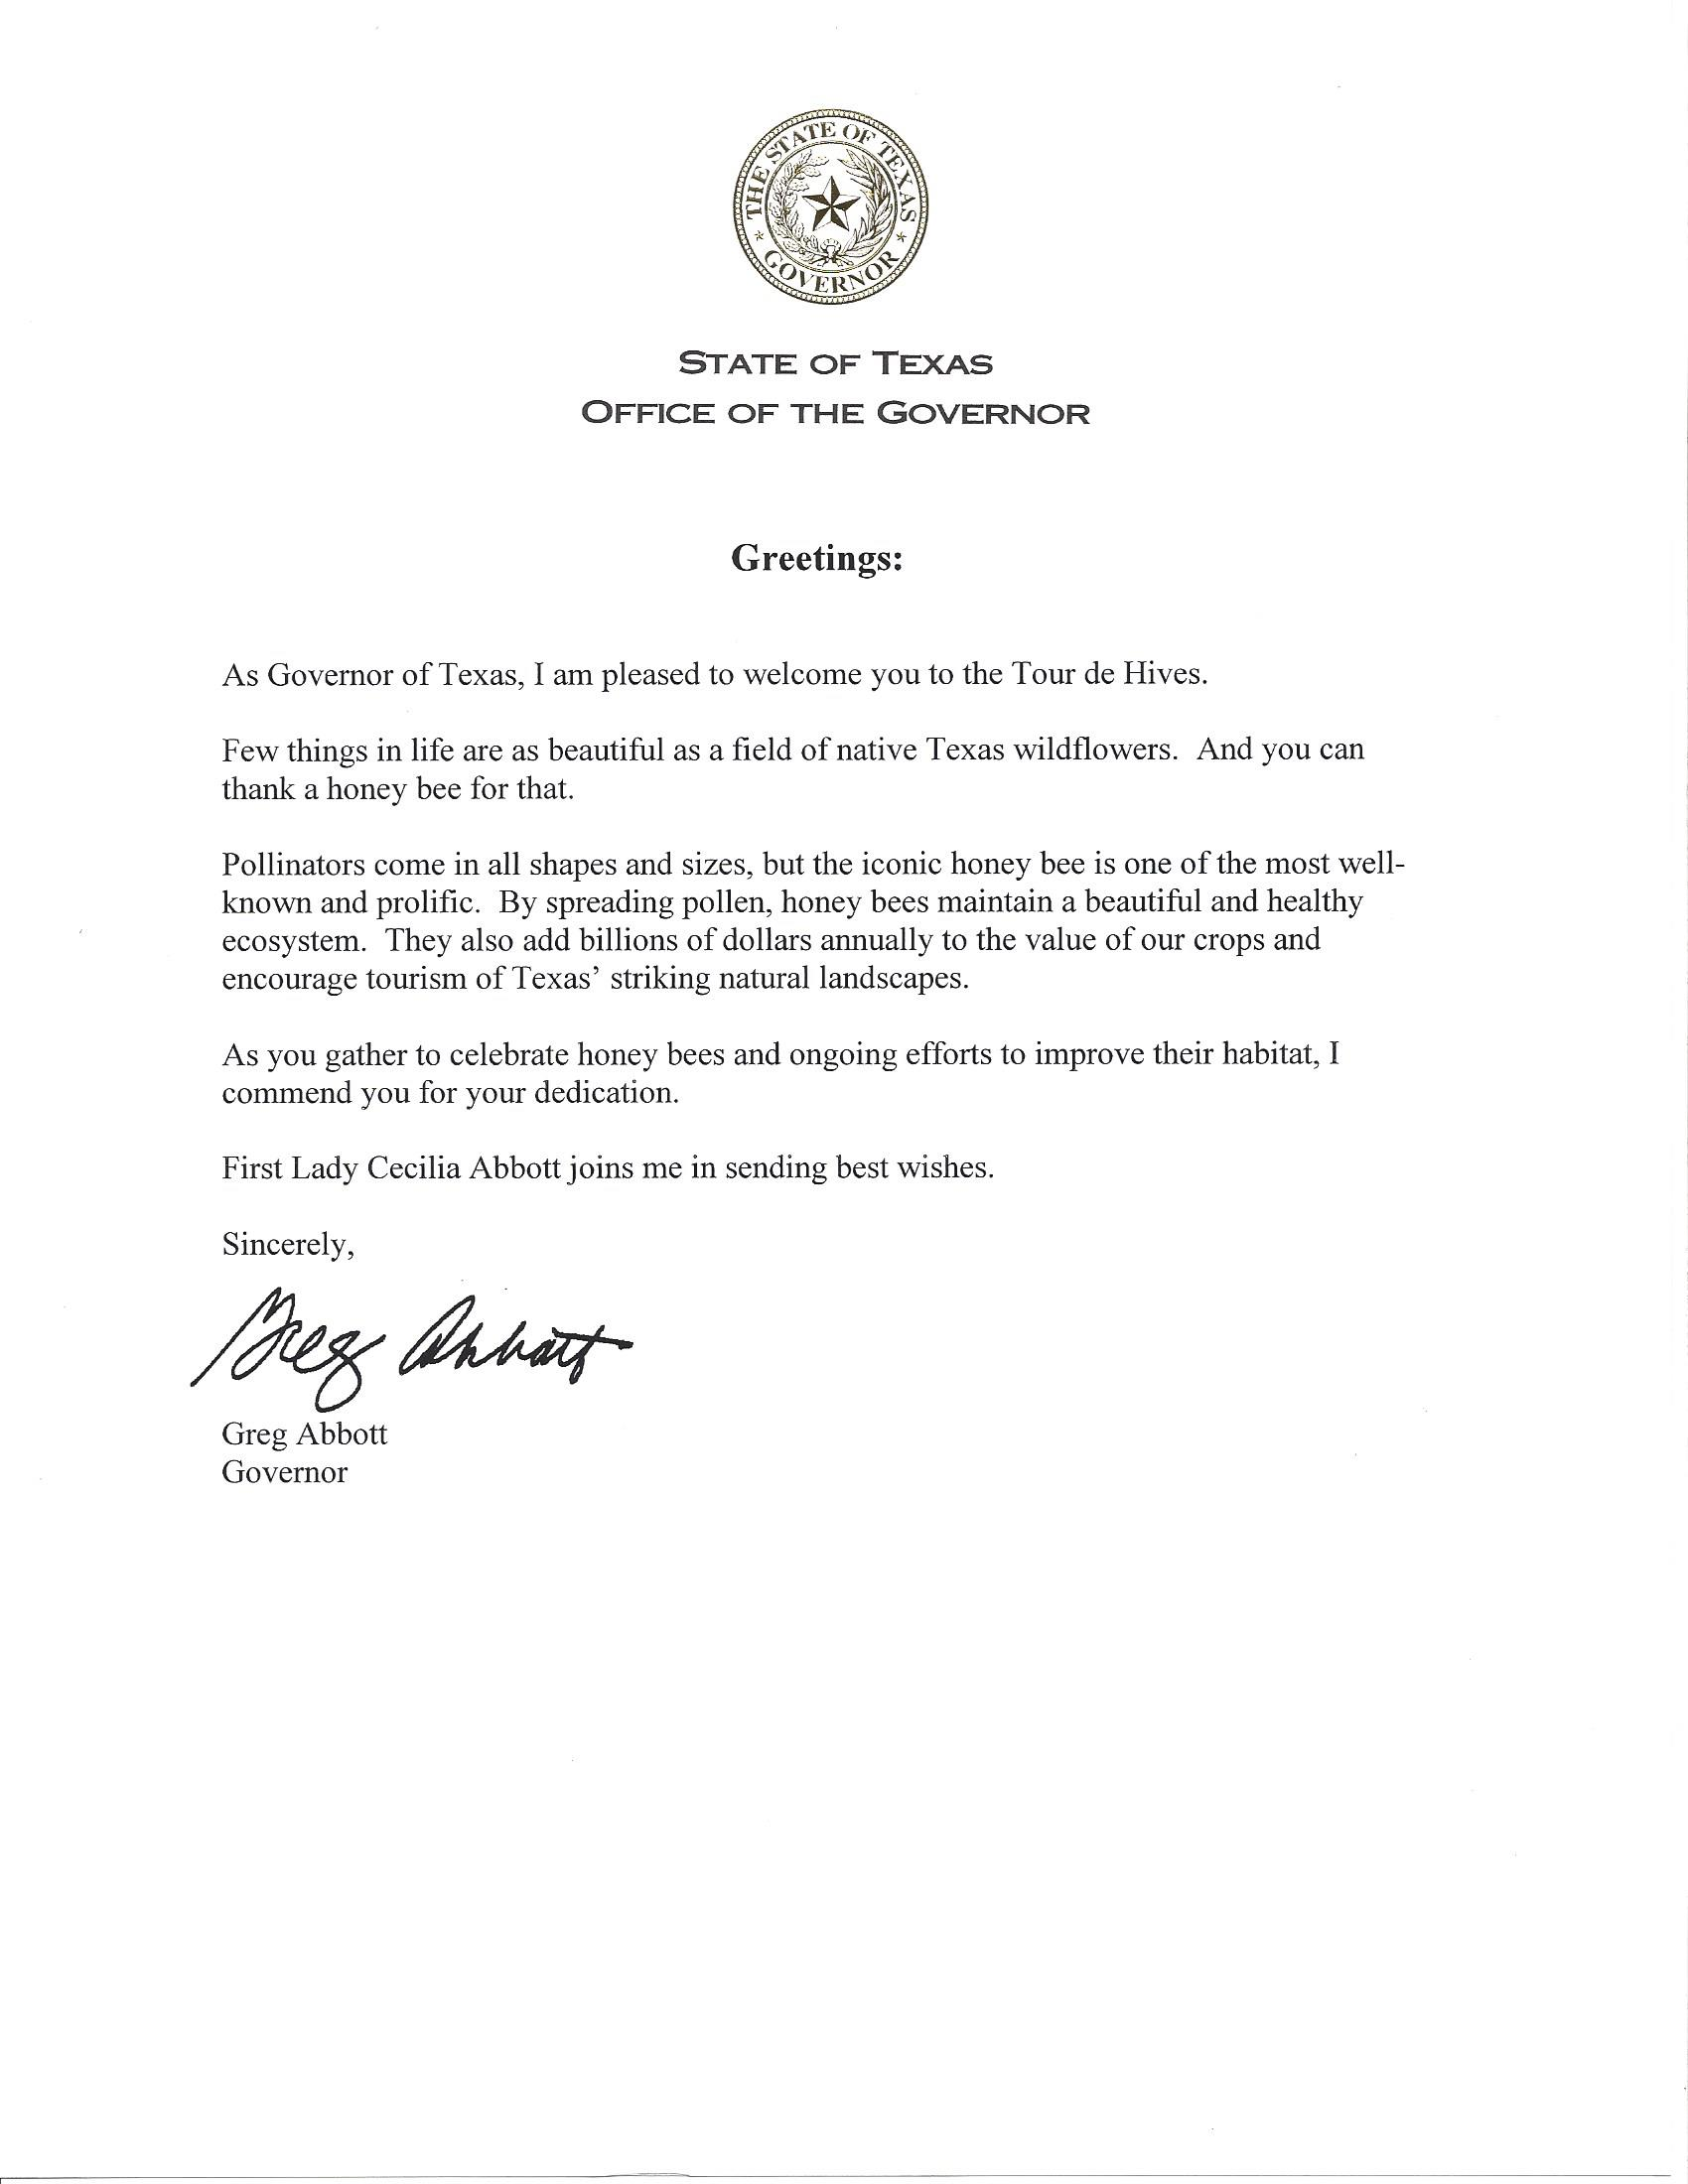 Welcome Letter From Governor Abbott For Tour De Hives  Travis